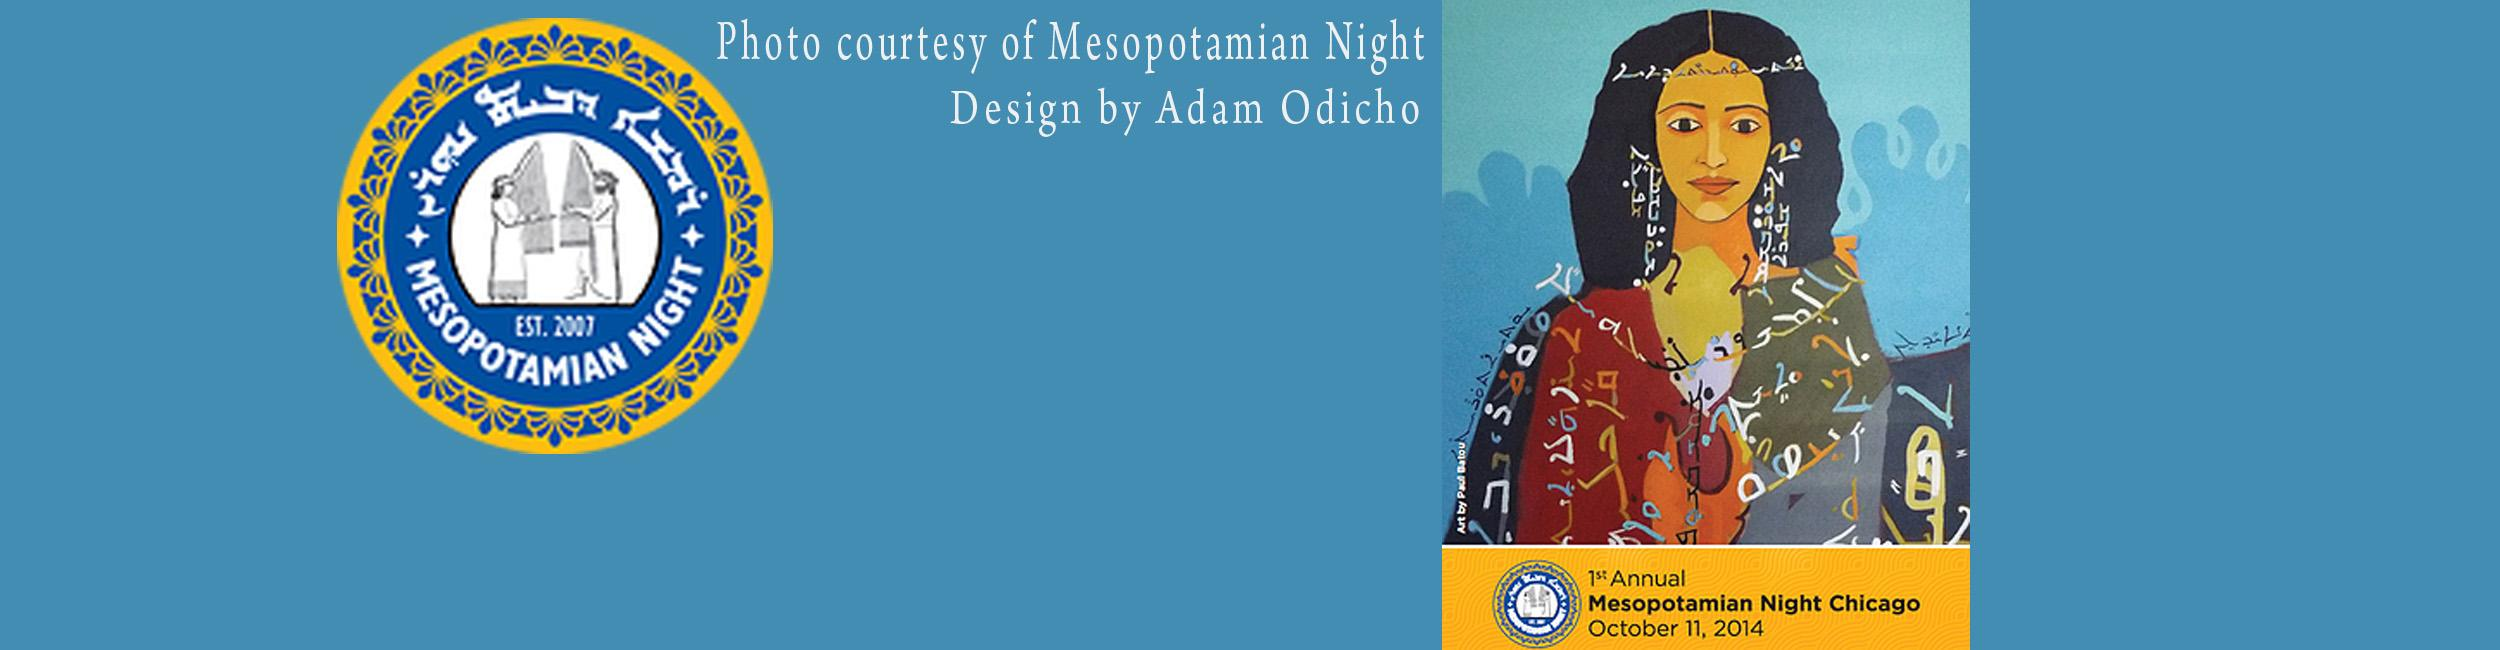 Chicago's First Mesopotamian Night was a success